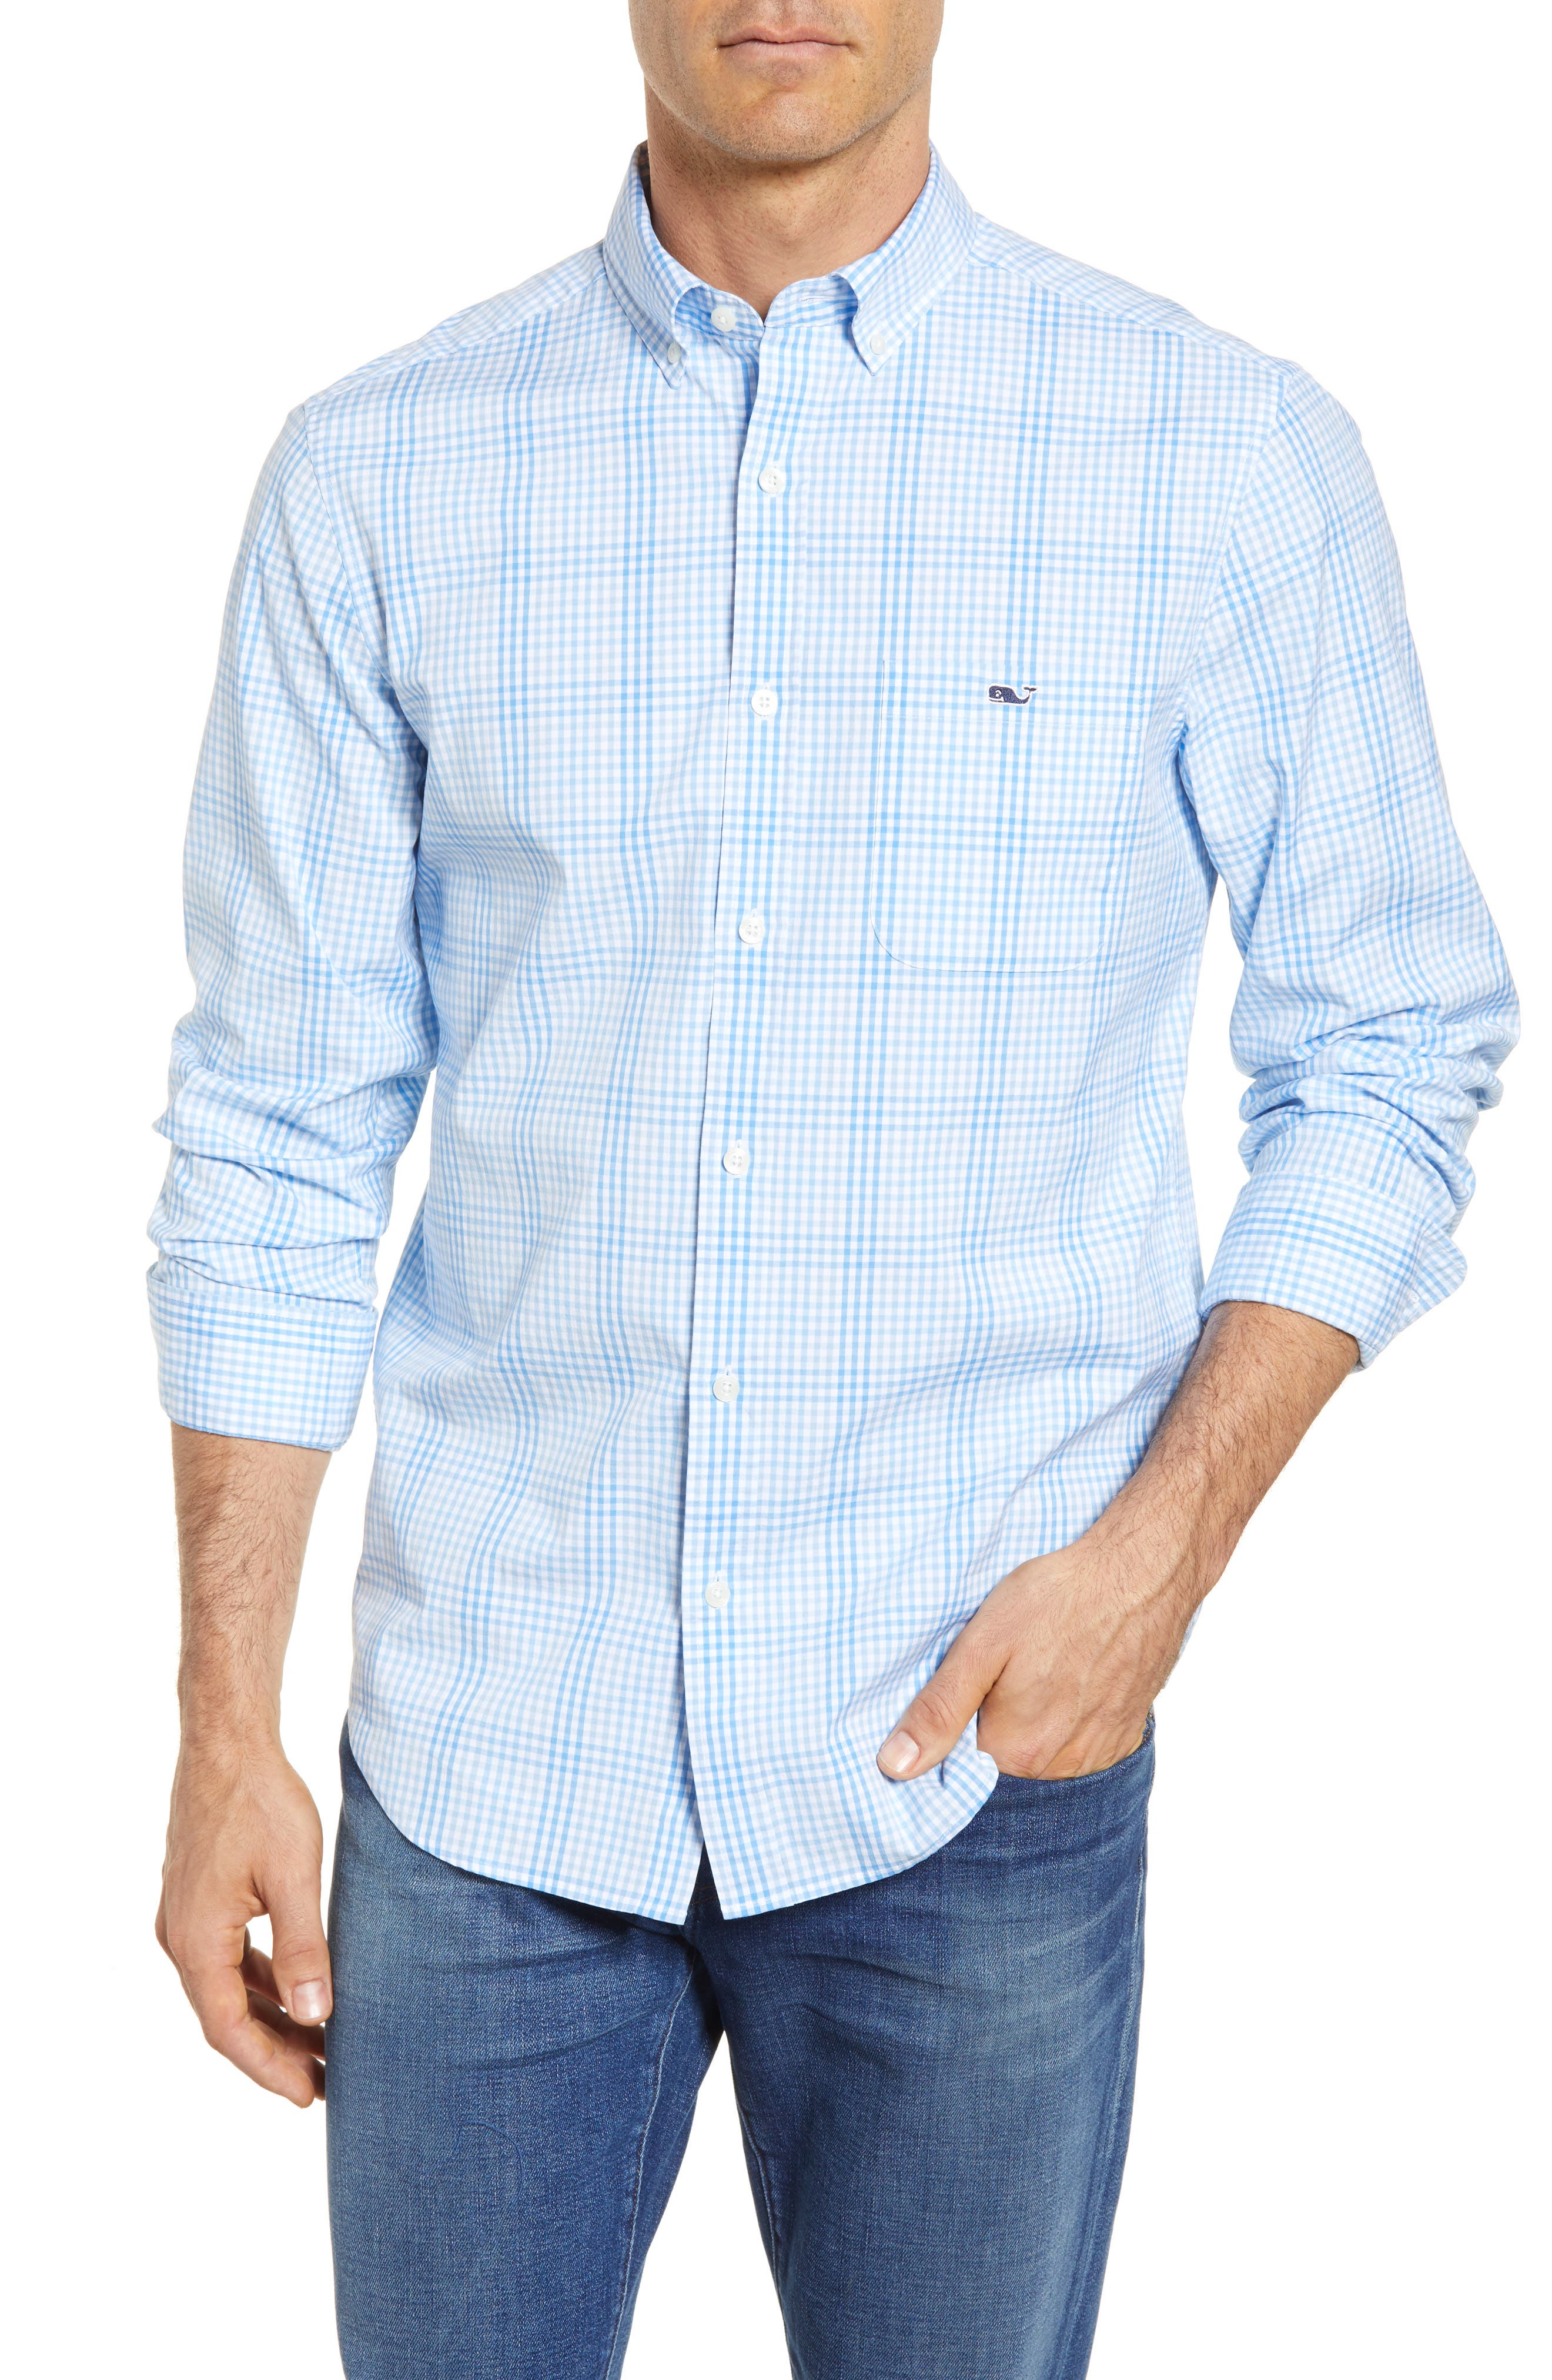 Ridge Hill Classic Fit Check Sport Shirt,                         Main,                         color, 477